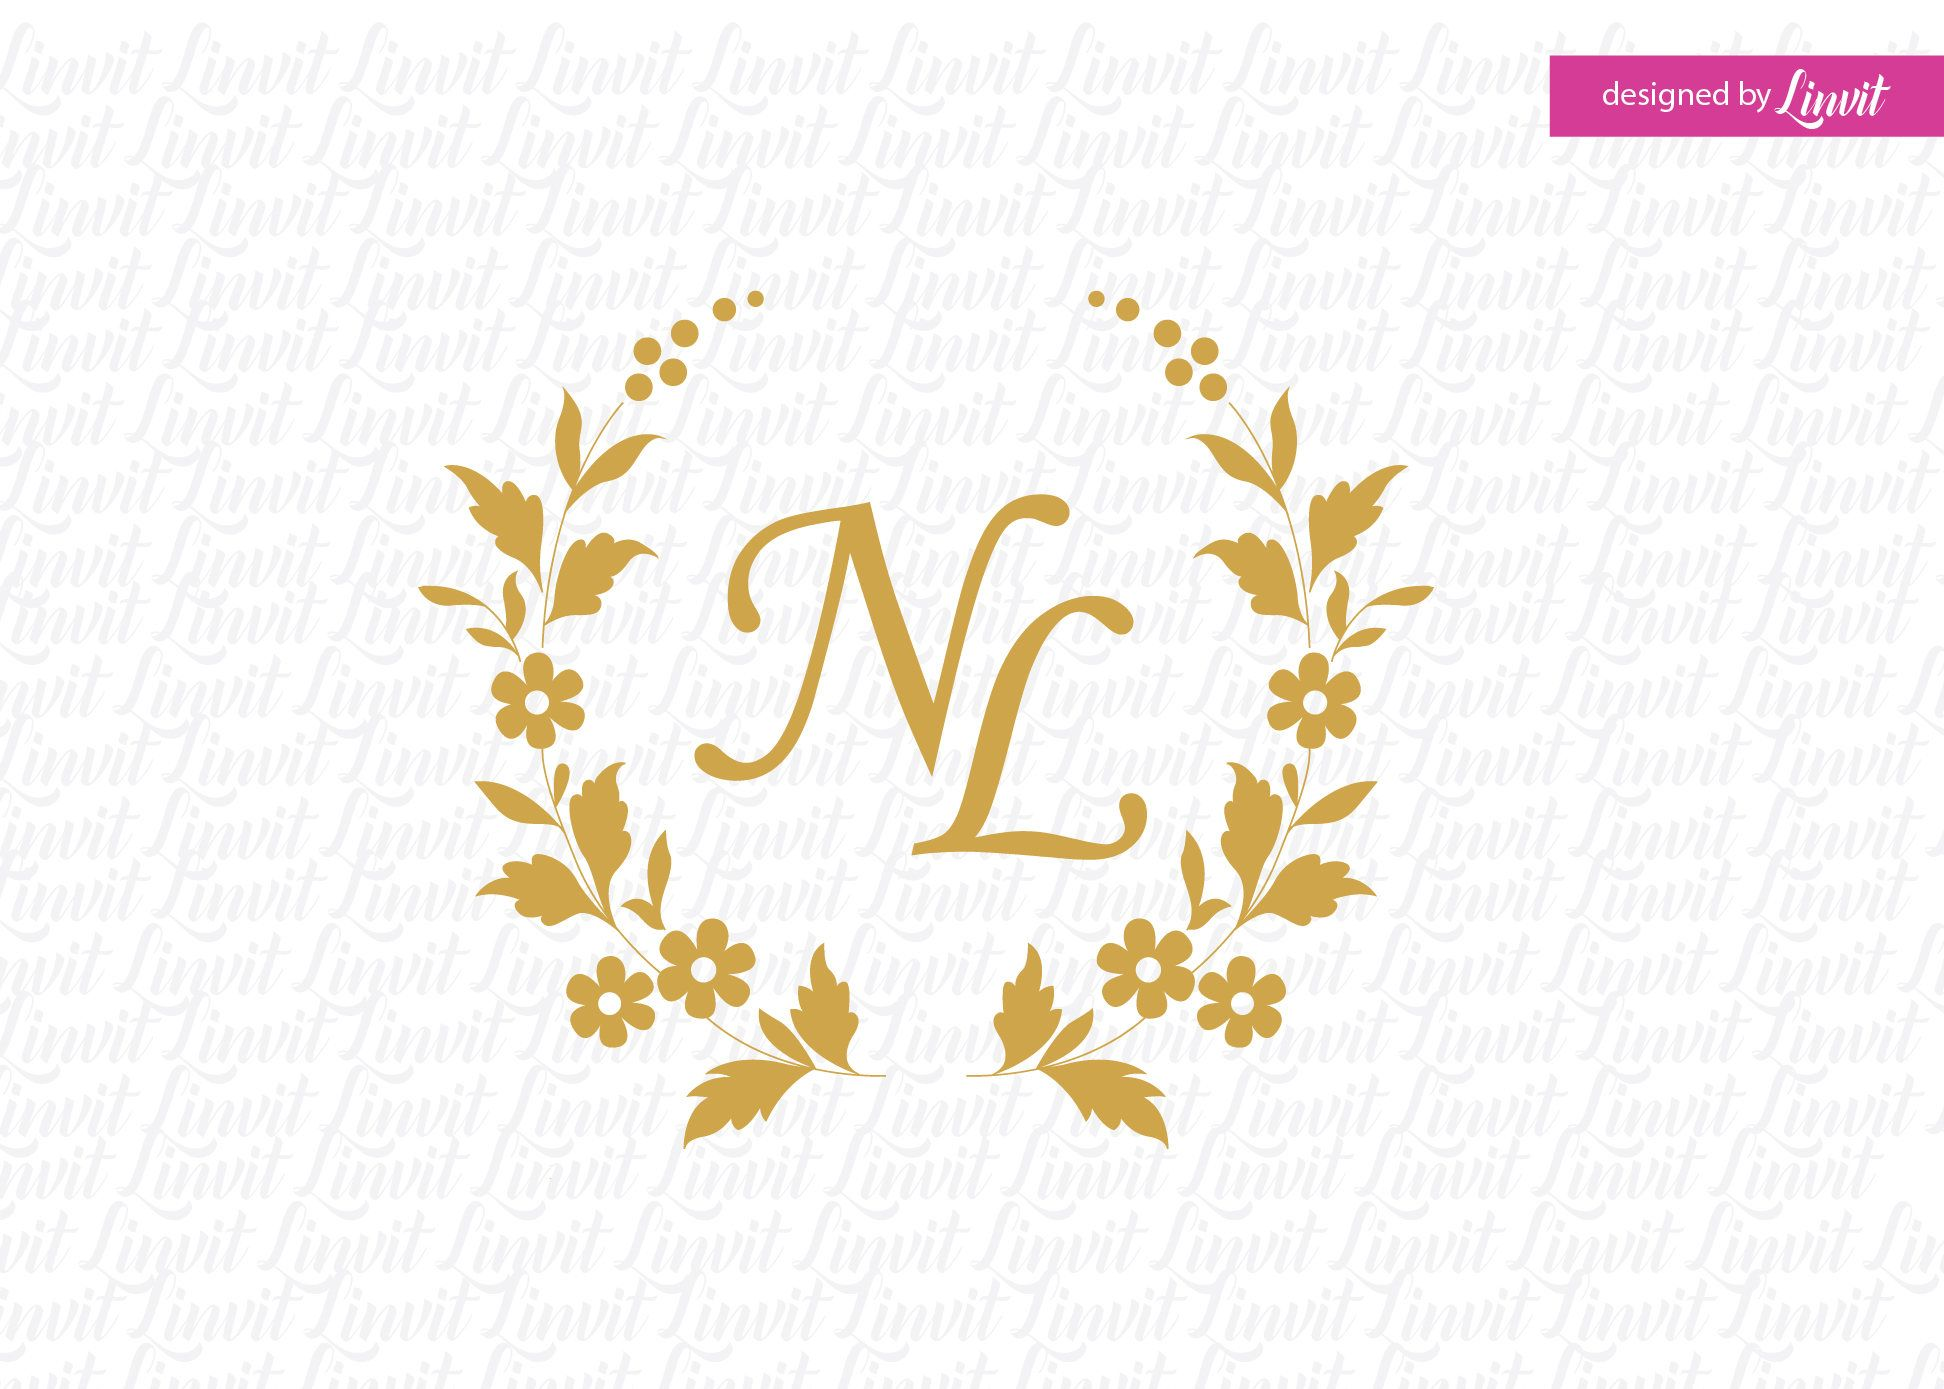 Floral Wreath Logo Wedding Crest Wedding Wreath Diy Wedding Etsy In 2020 Wedding Logos Monogram Wedding Diy Wedding Wreath